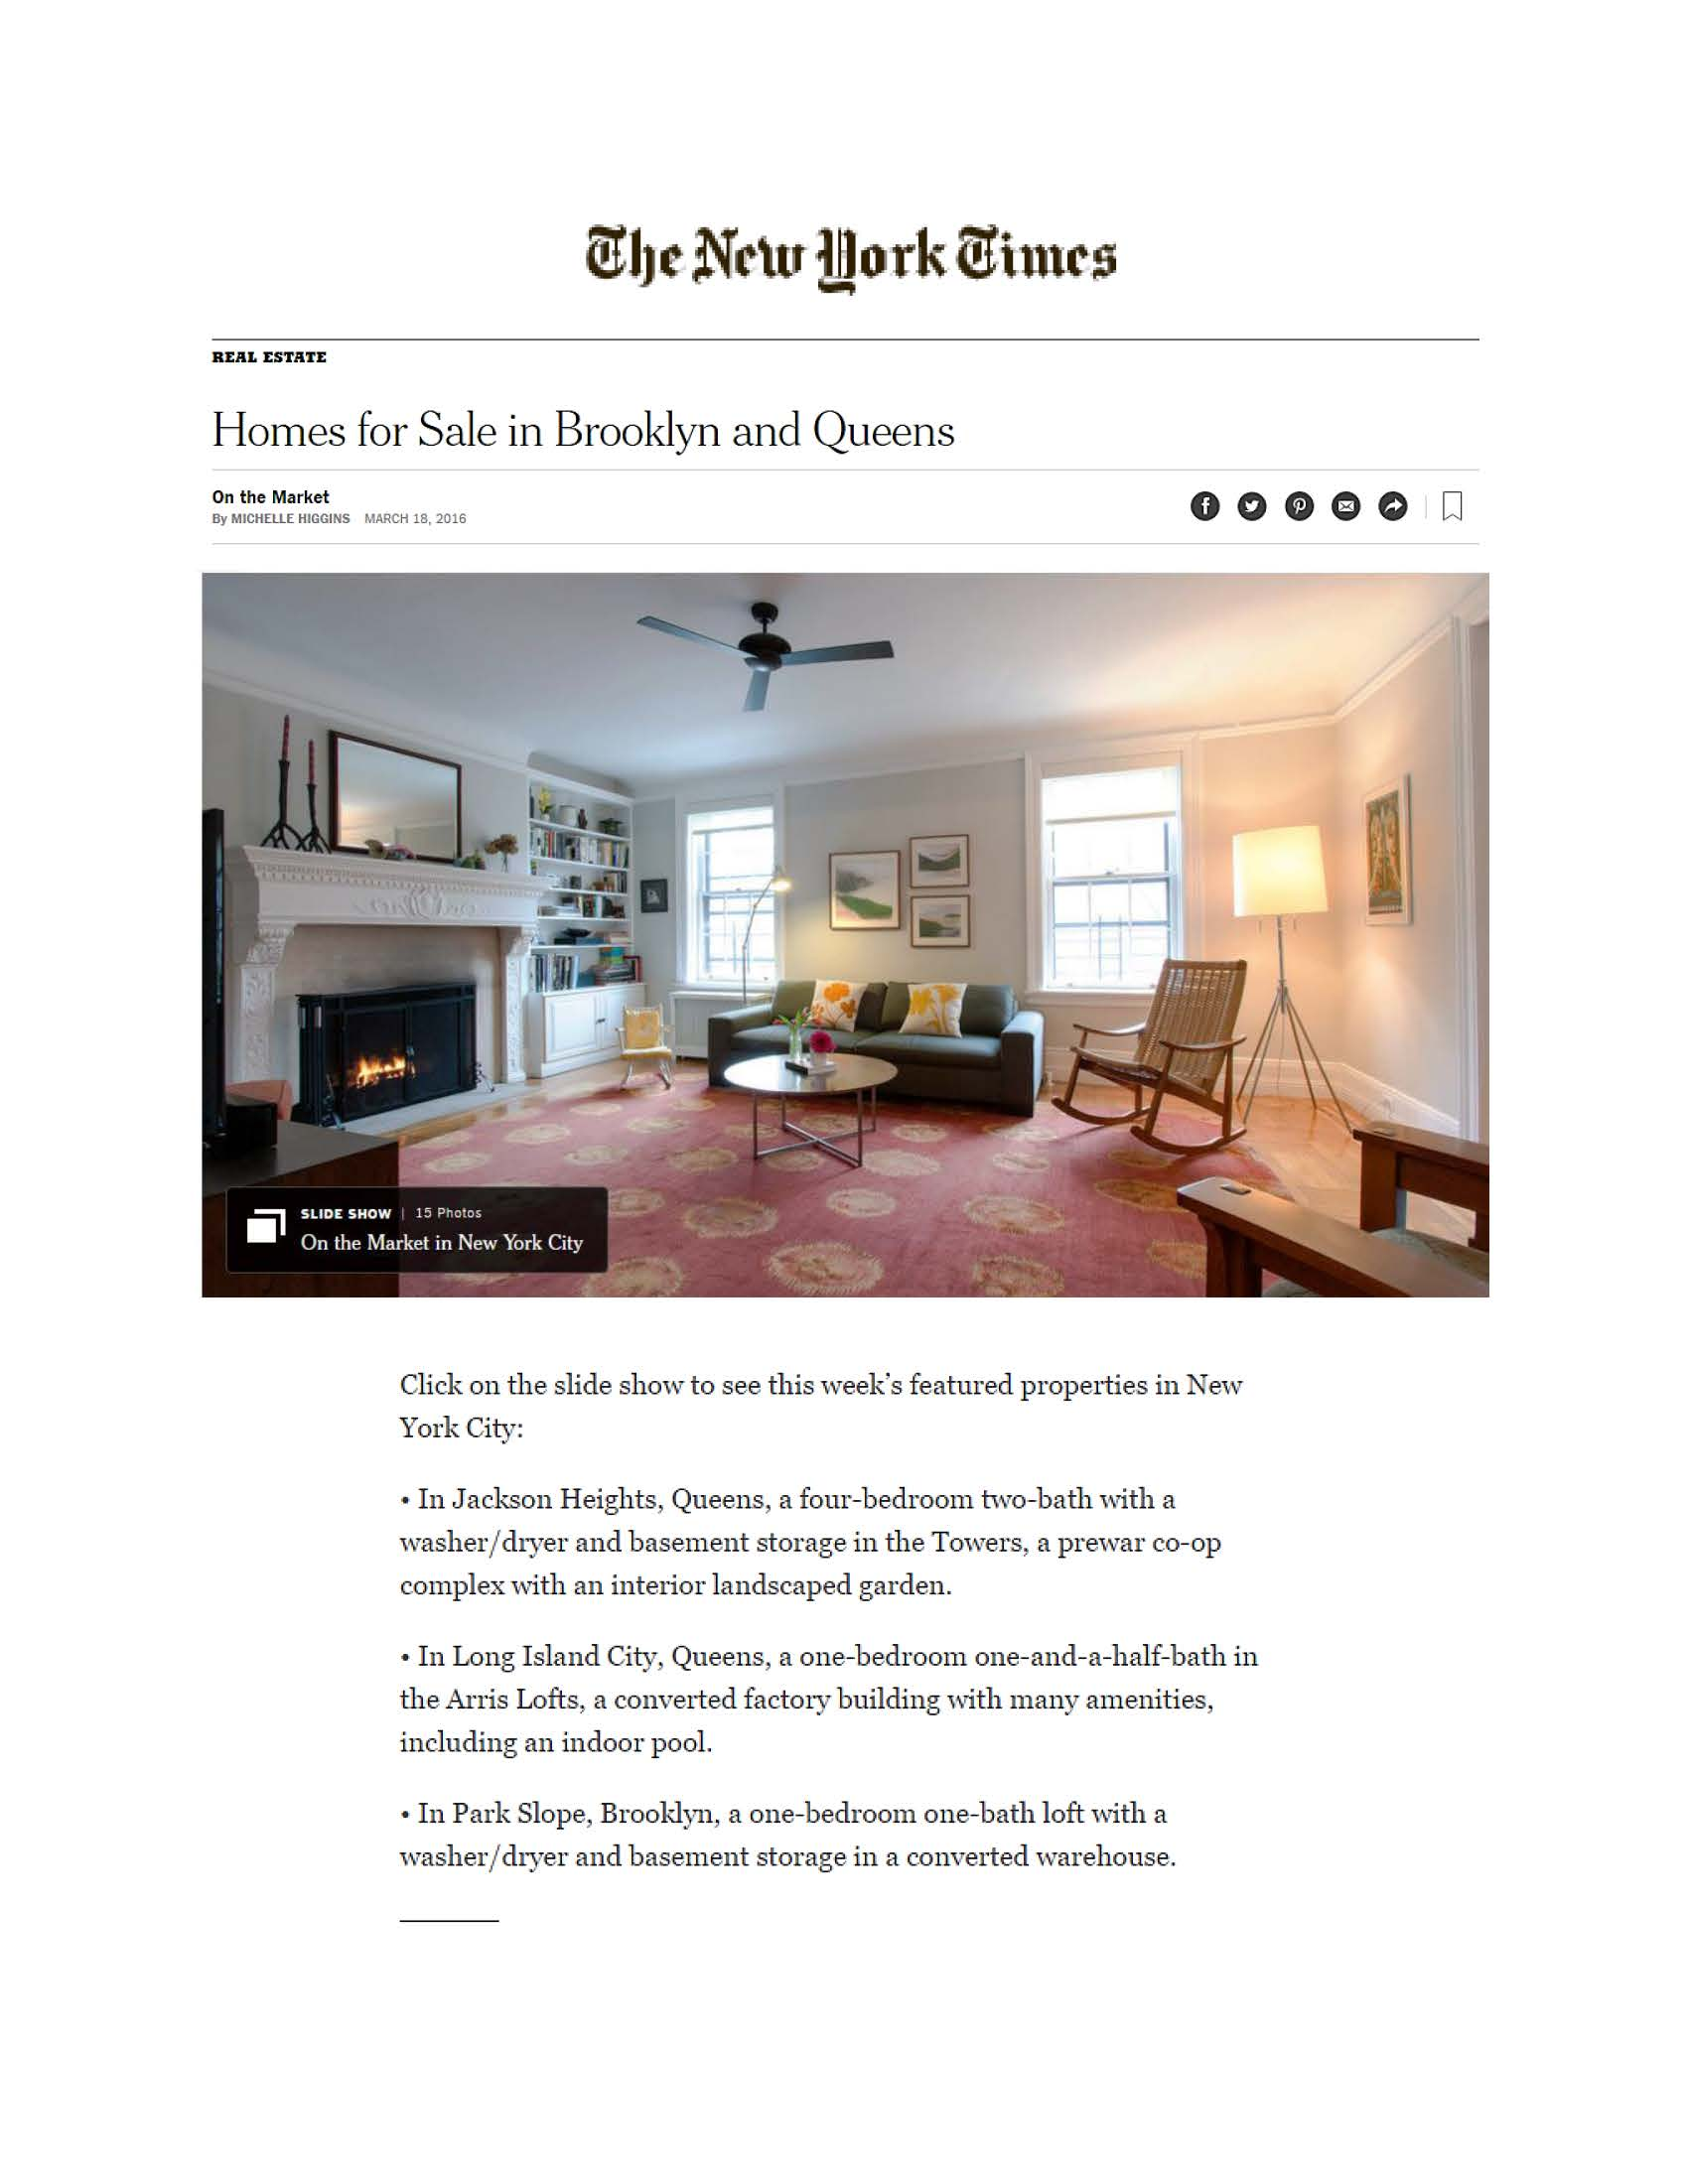 NYTimes.com - Homes for Sale in Brooklyn and Queens 3.18.16 (1)_Page_1